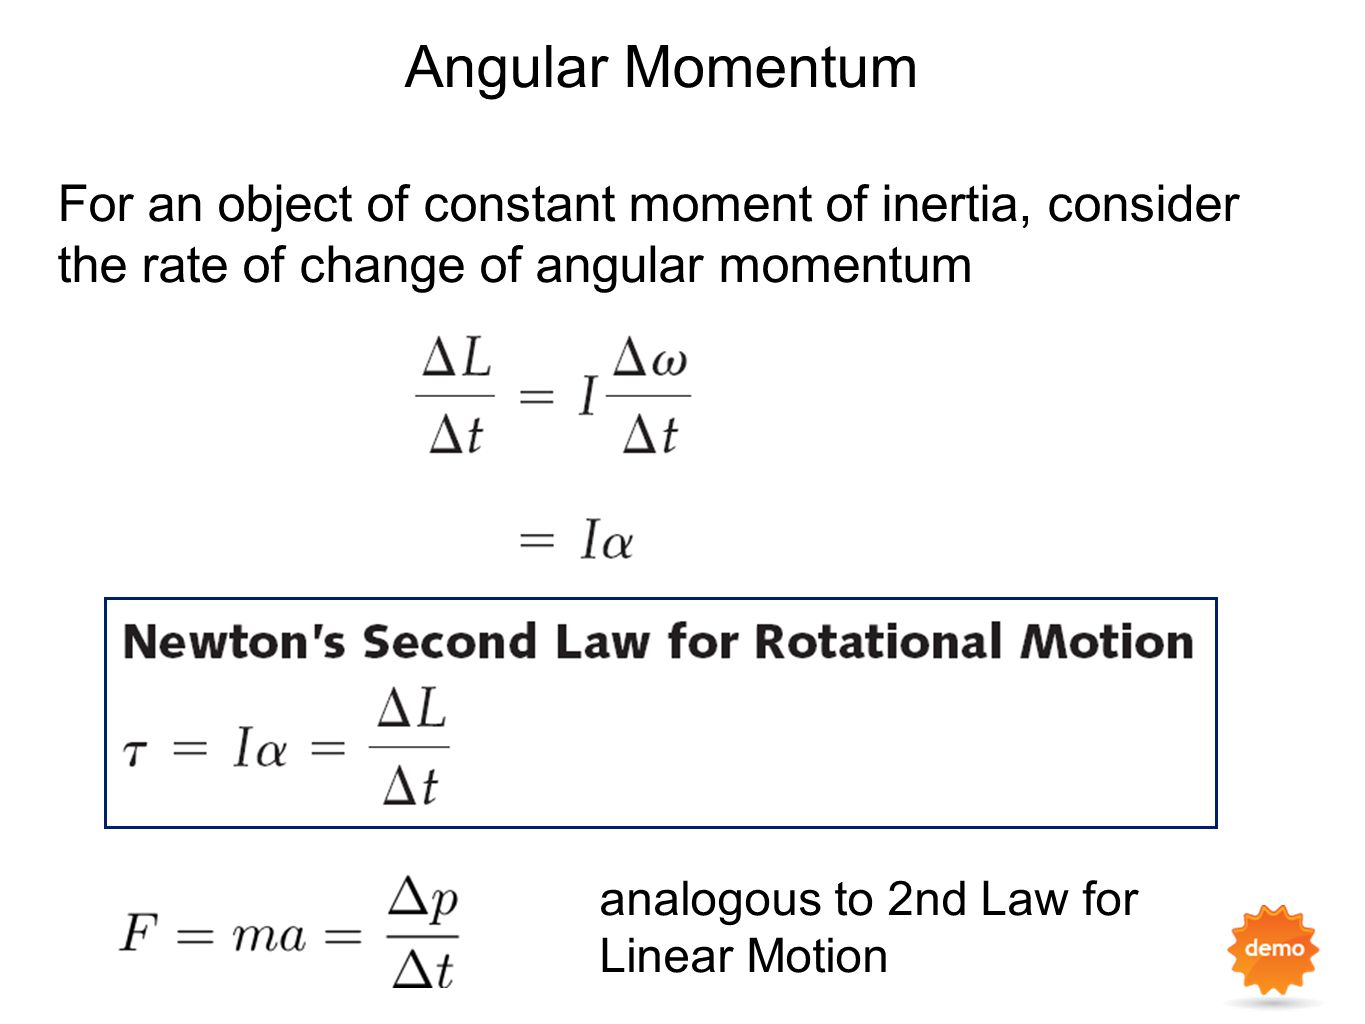 Angular Momentum For an object of constant moment of inertia, consider the rate of change of angular momentum.